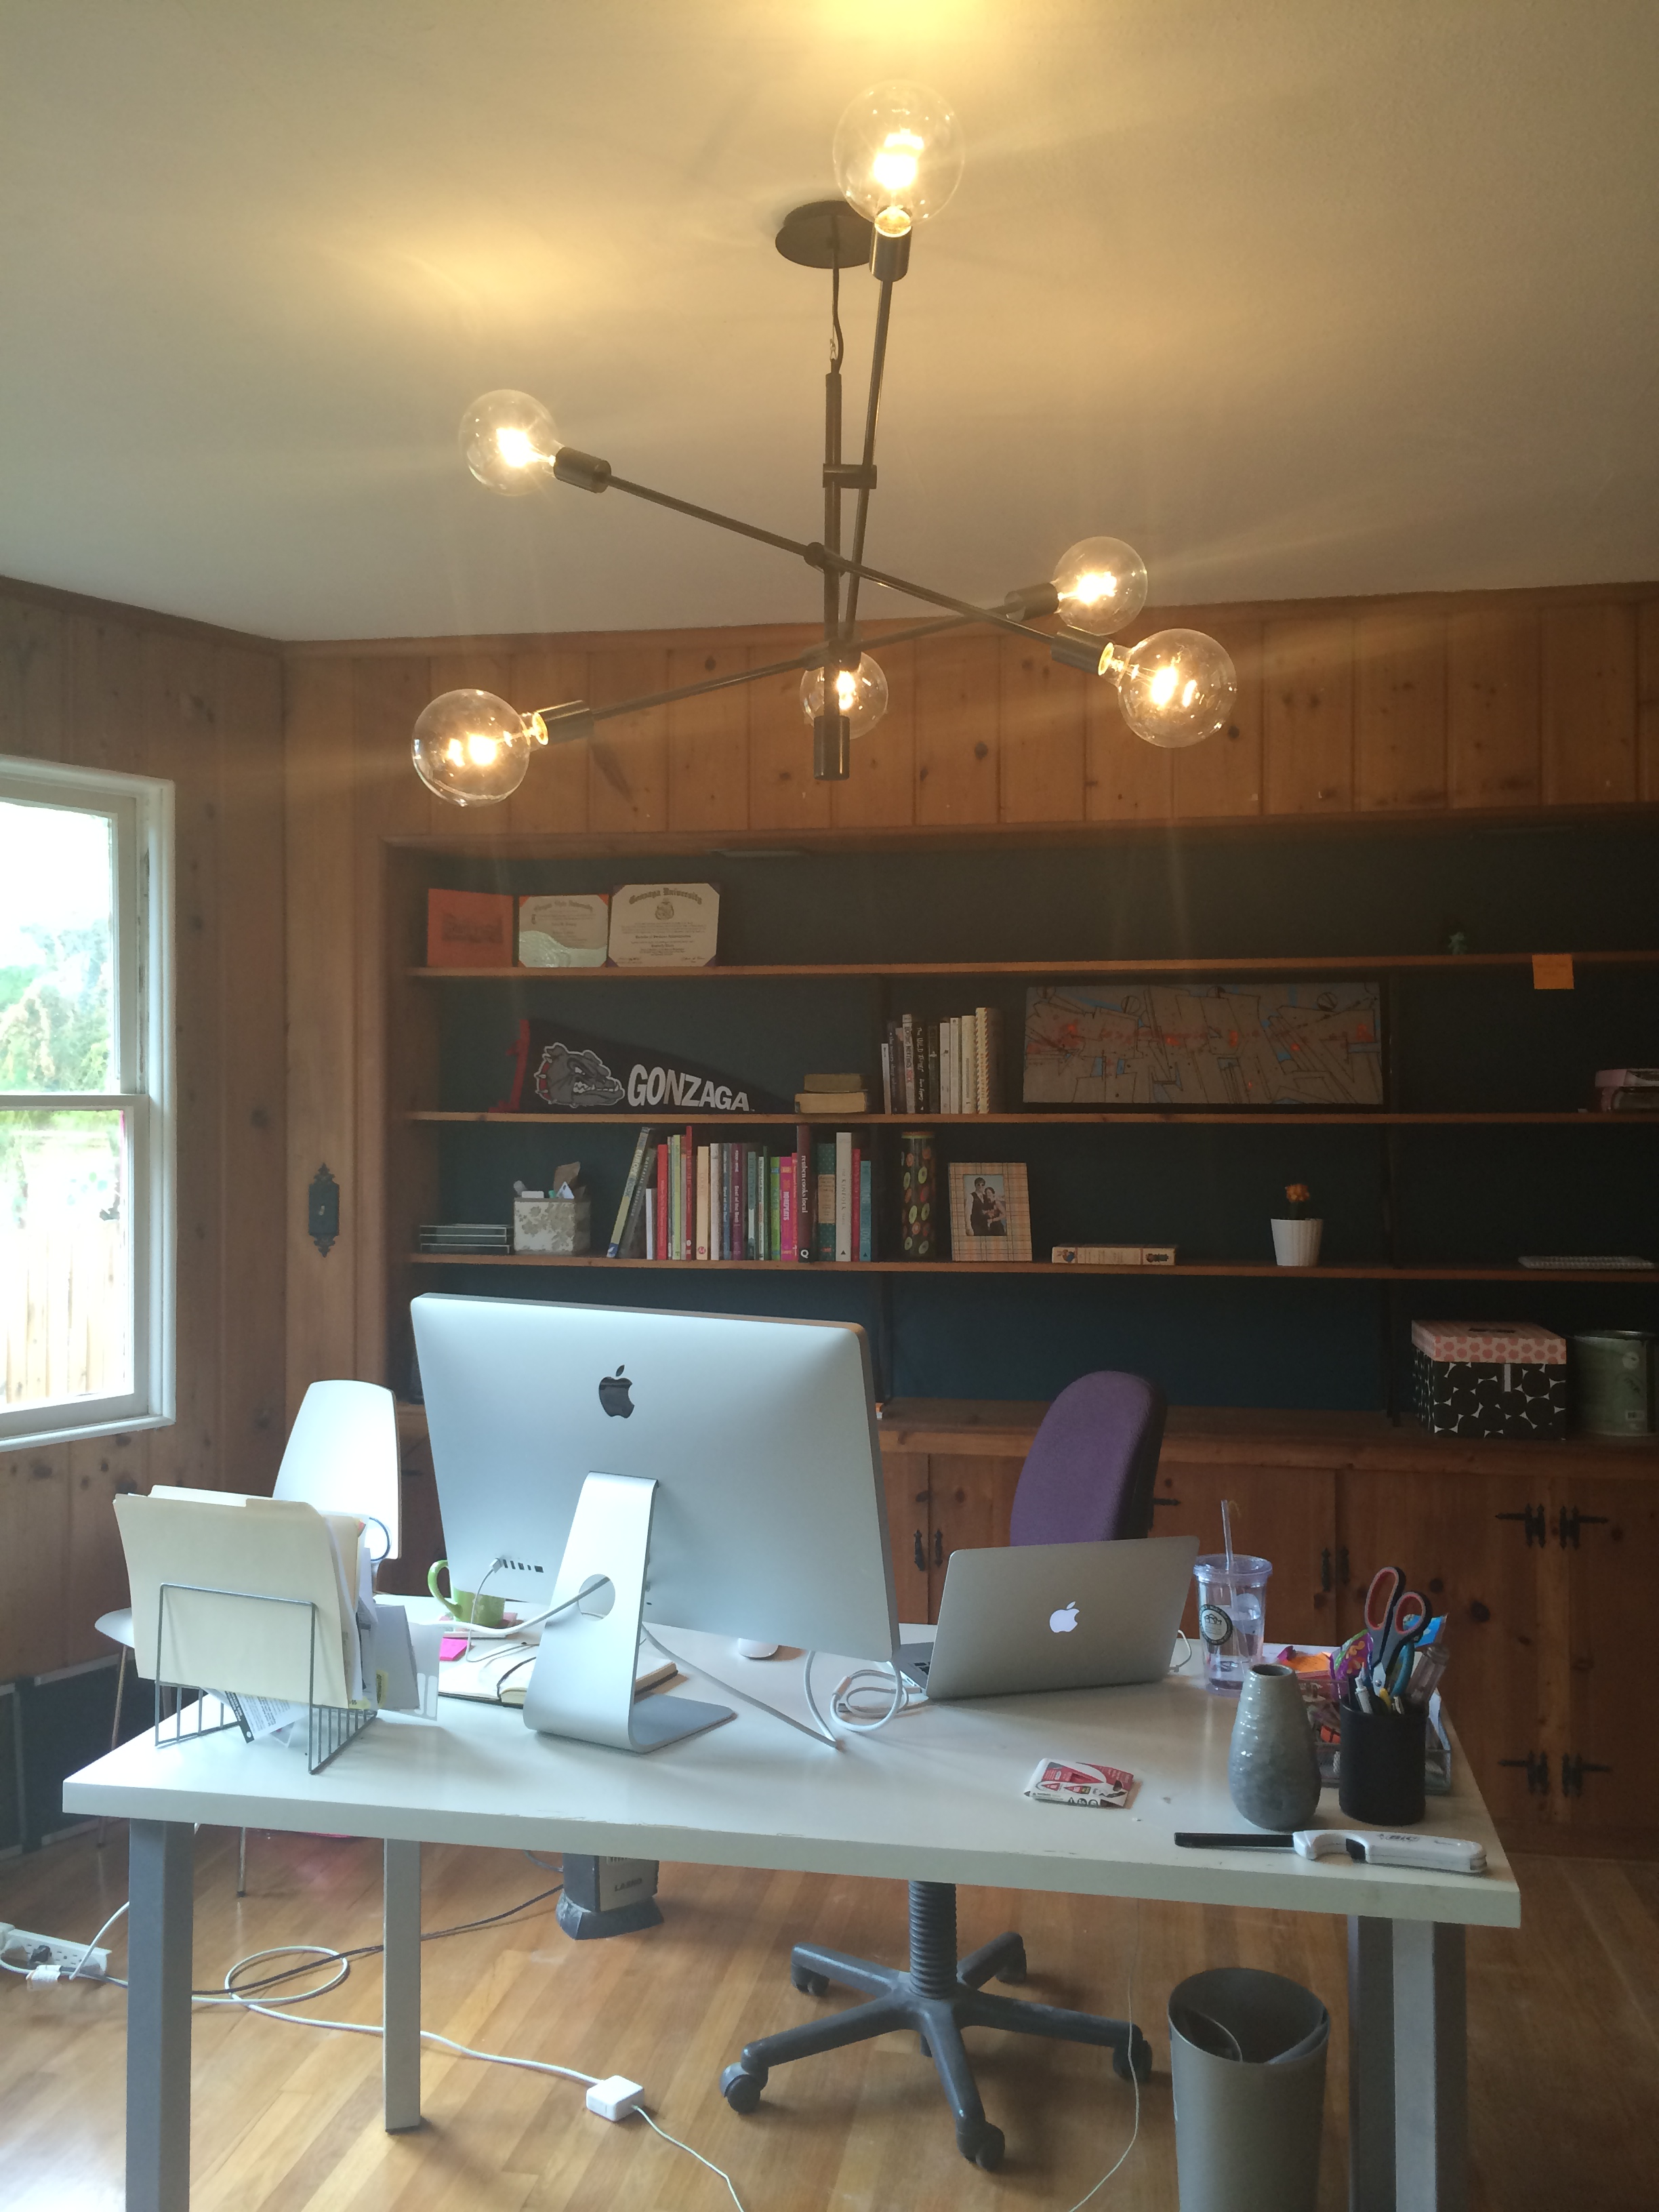 West Elm Mobile Chandelier In Office